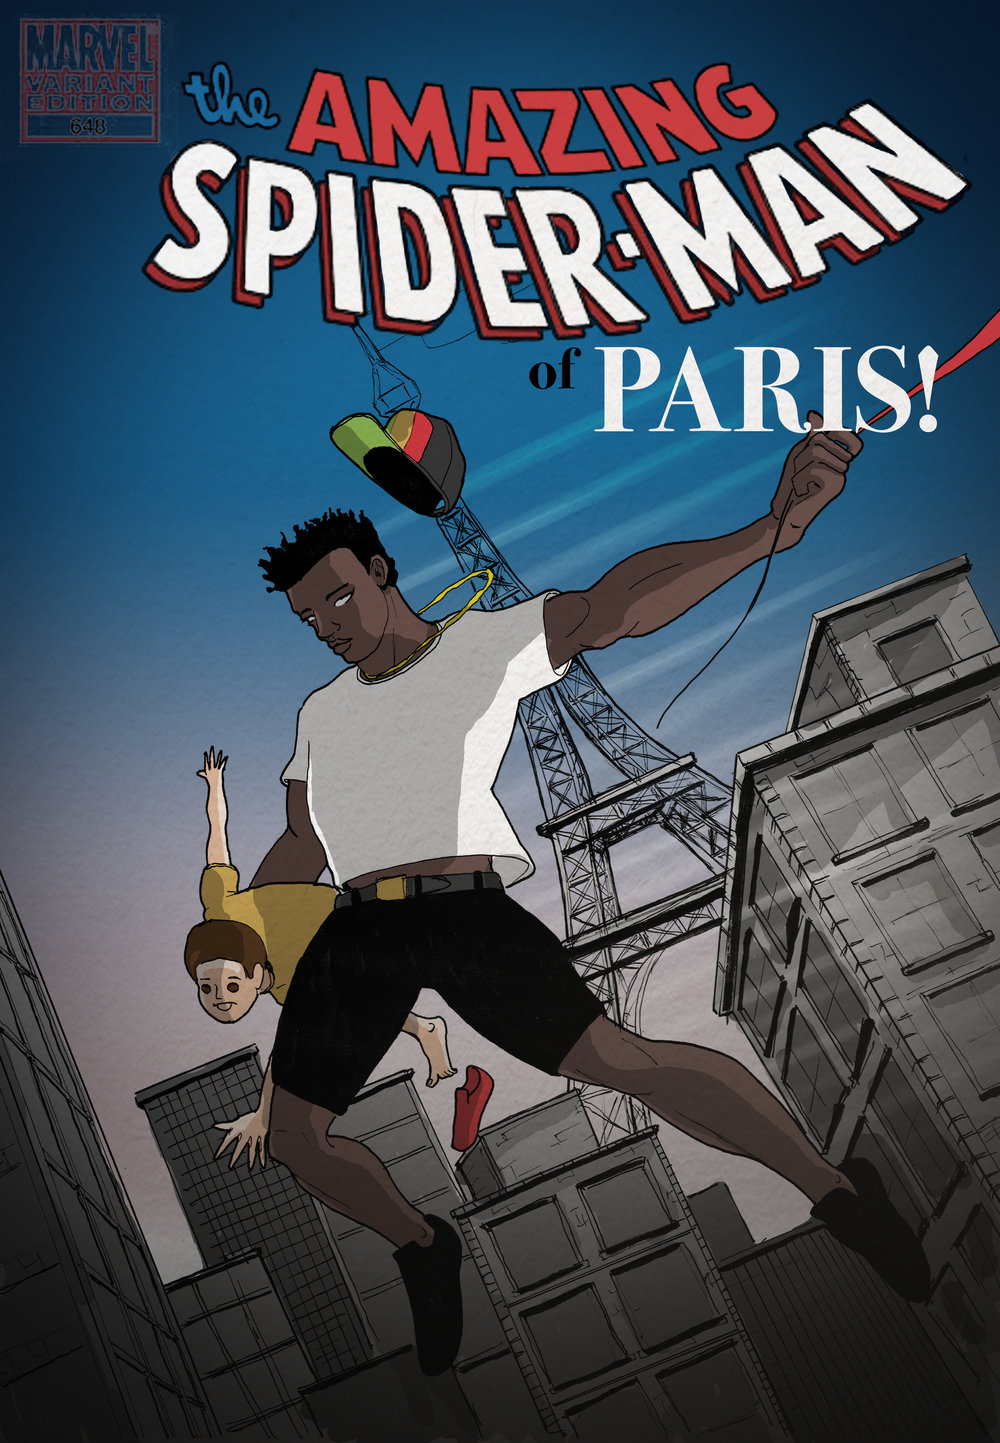 Paris Spider Man 3.jpg